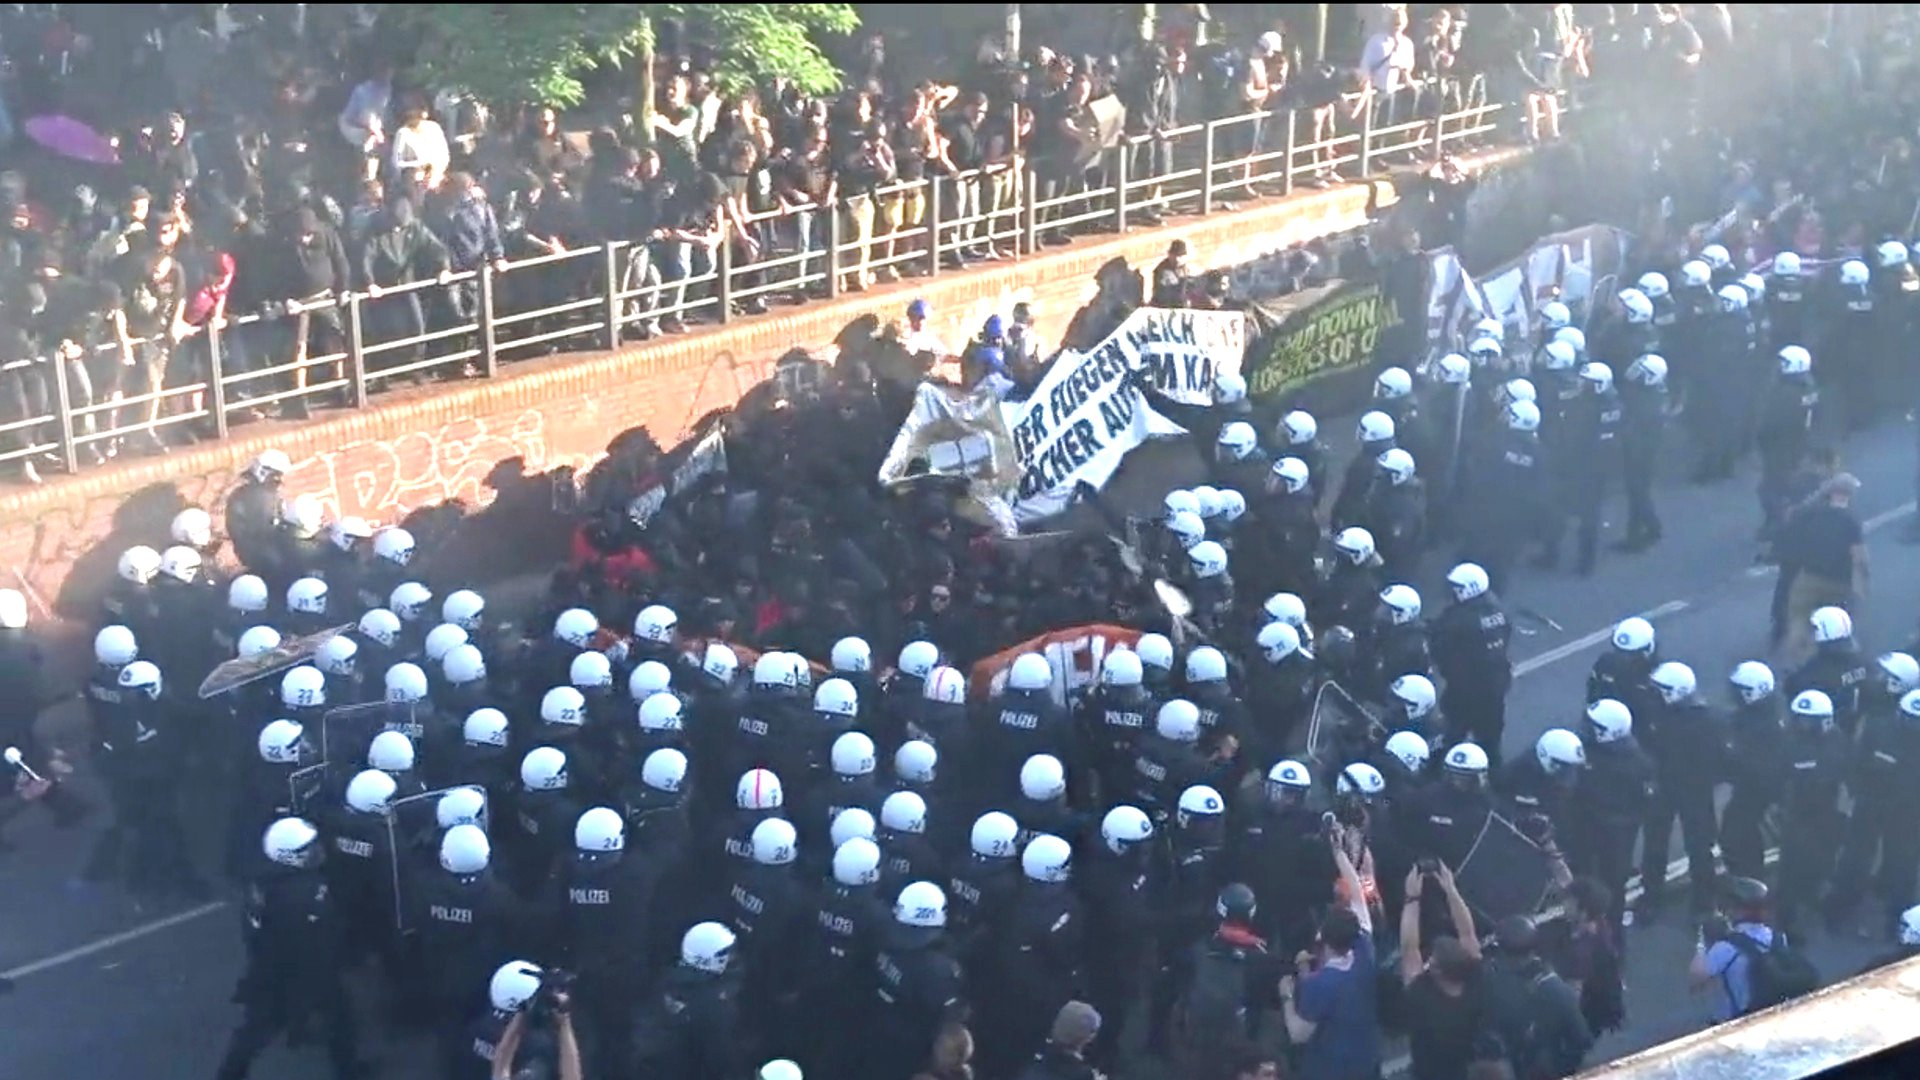 Polizei stoppt die Welcome to Hell-Demonstration